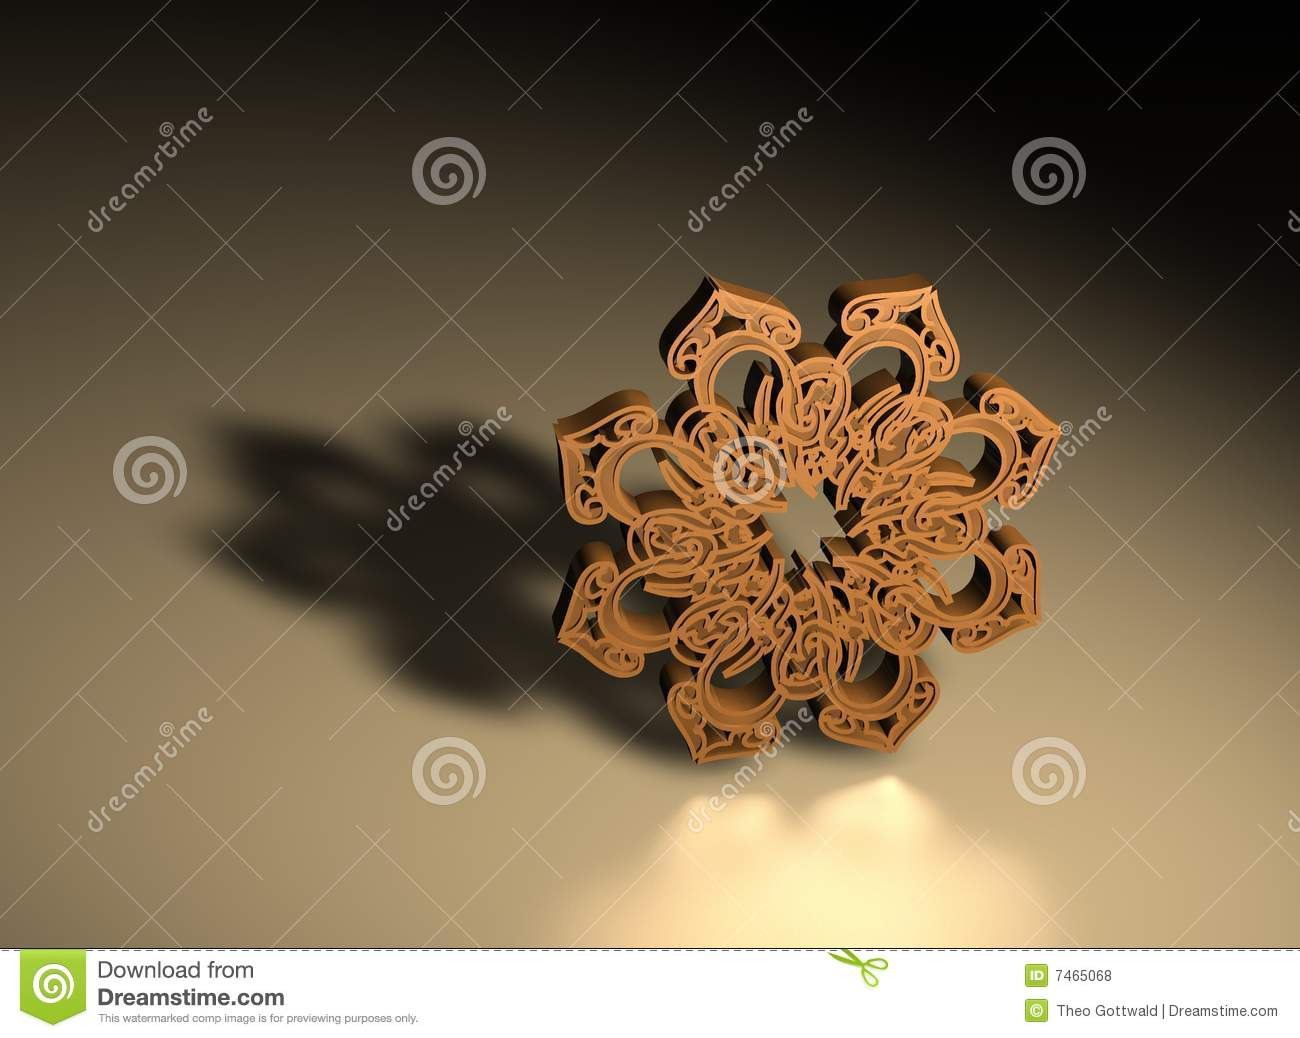 3D Islamic Prayer Symbol Stock Illustration. Image Of